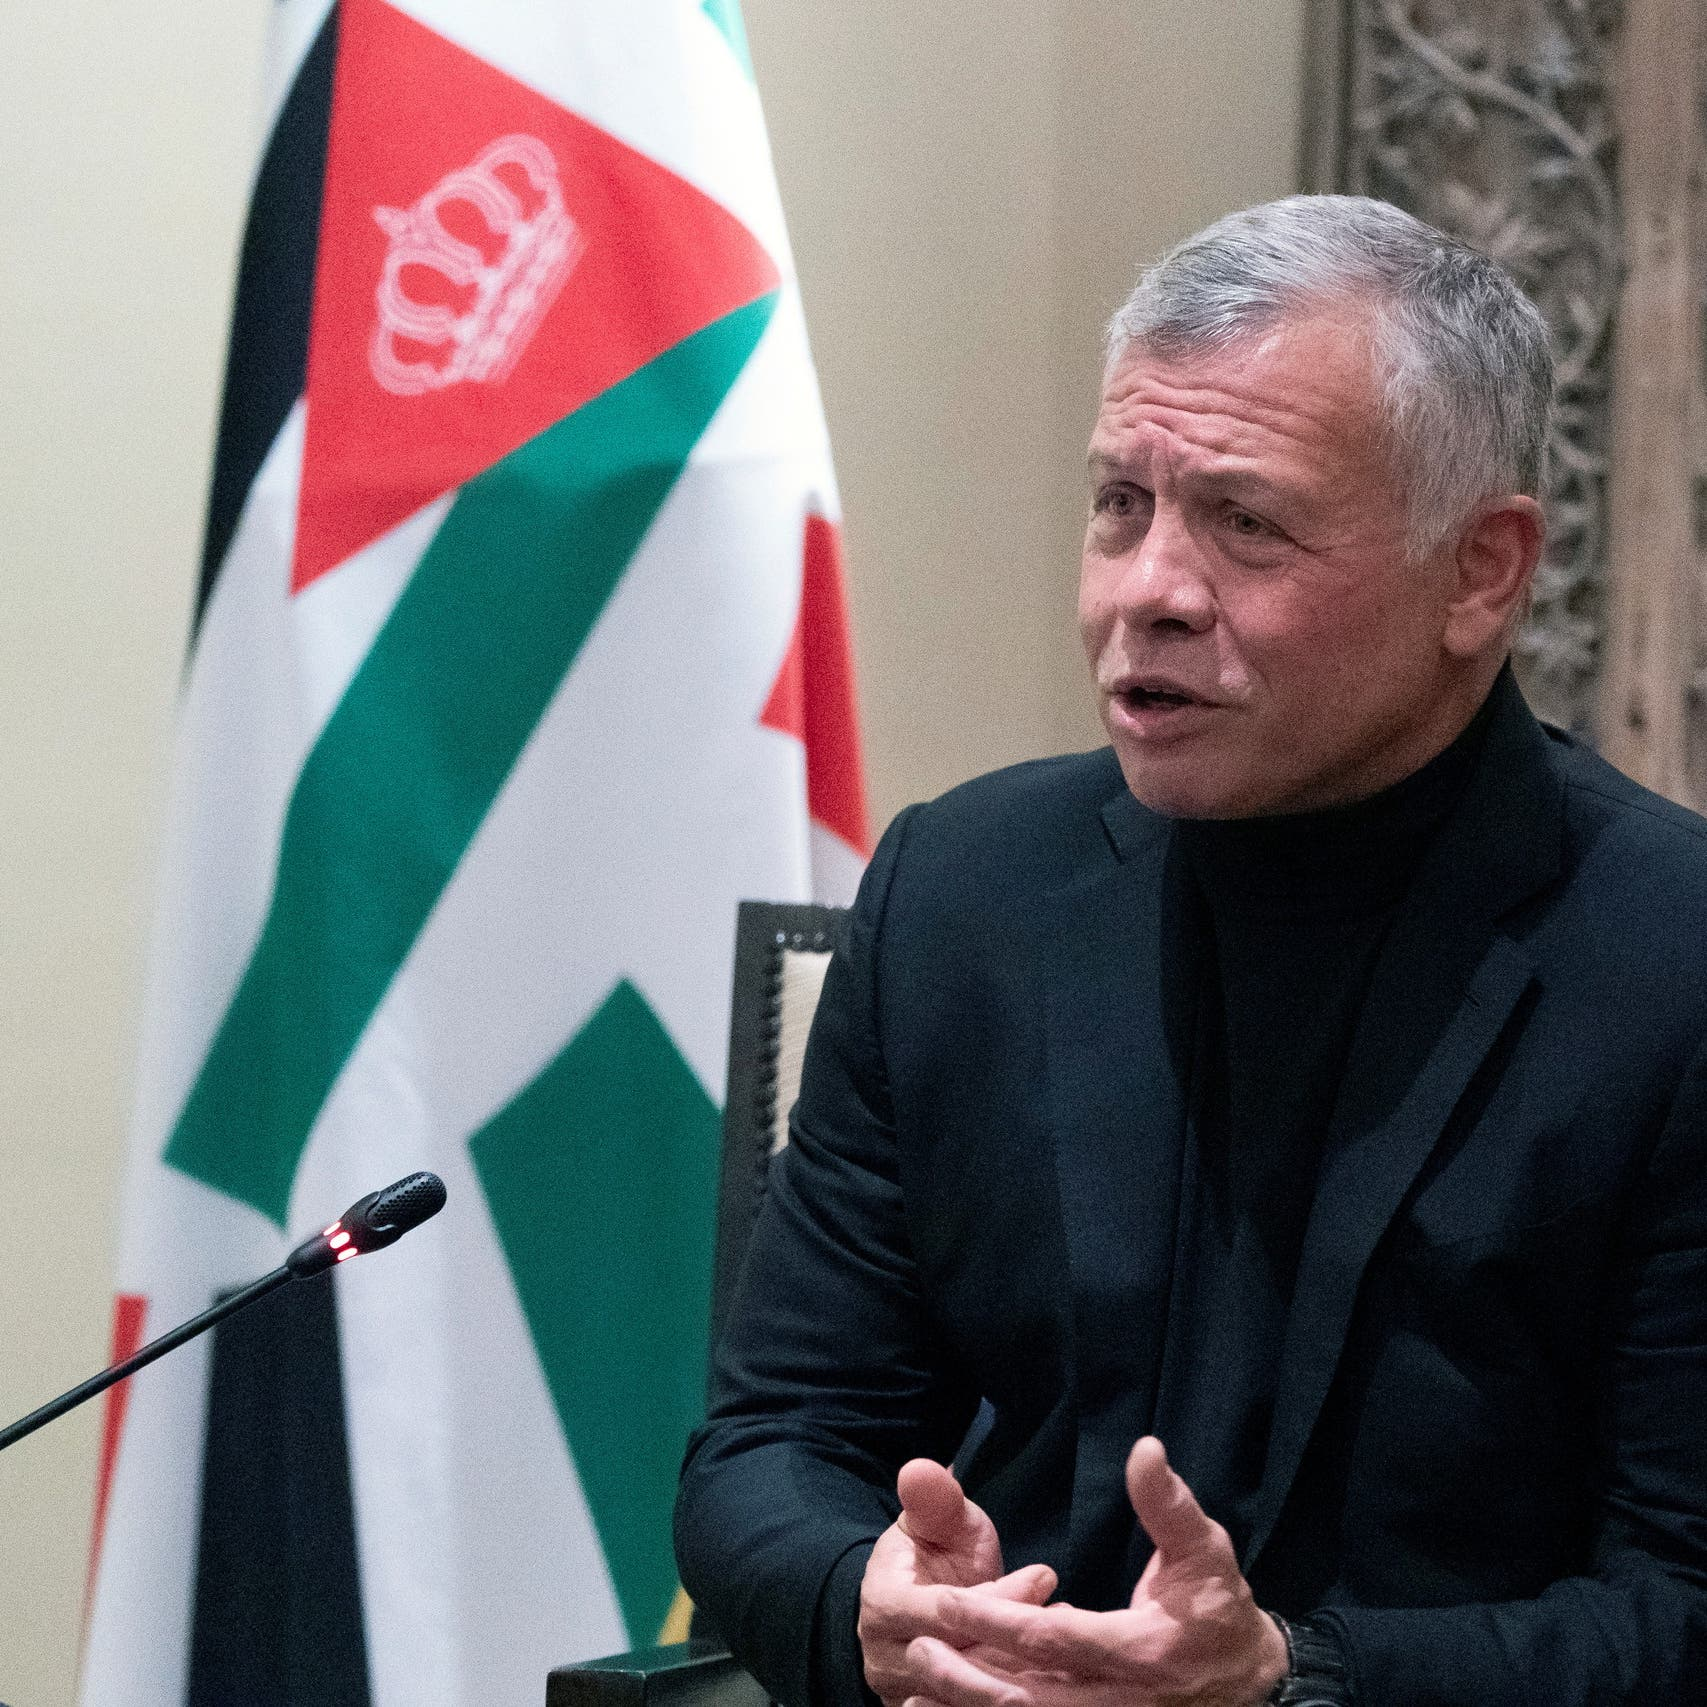 Jordan says 'distorted' claims in 'Pandora Papers' are security threat